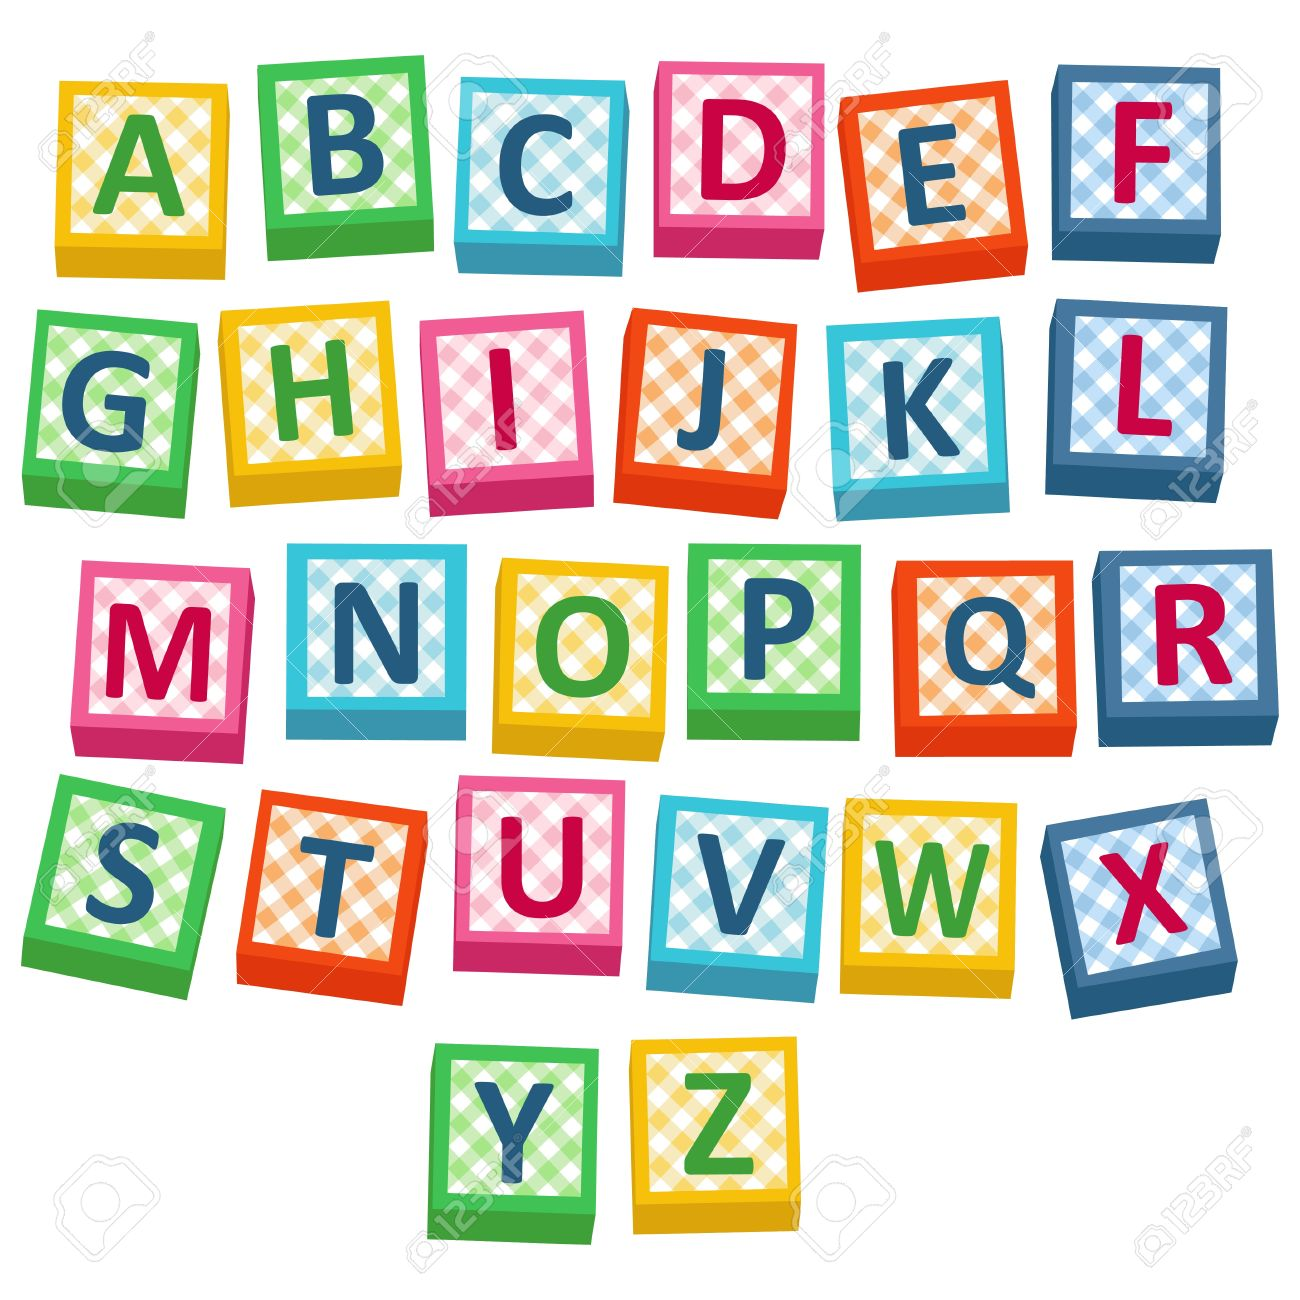 Alphabet building blocks clipart. English cubes illustration royalty